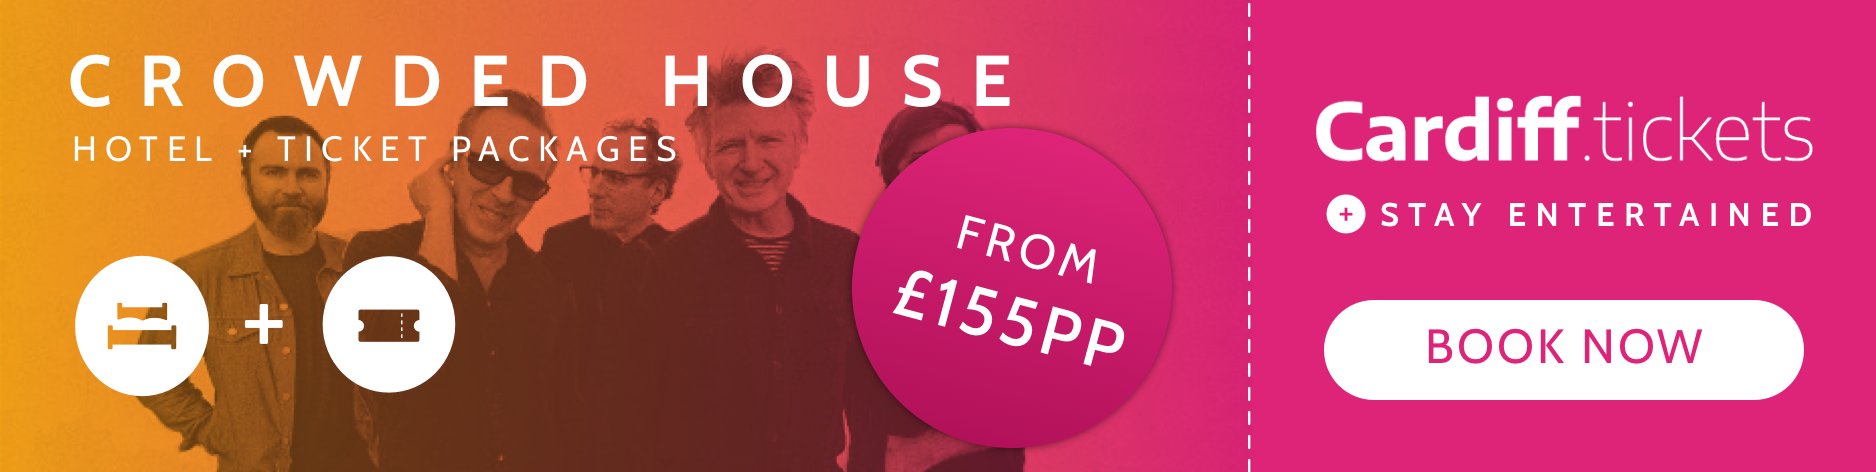 Crowded House tickets and hotel package